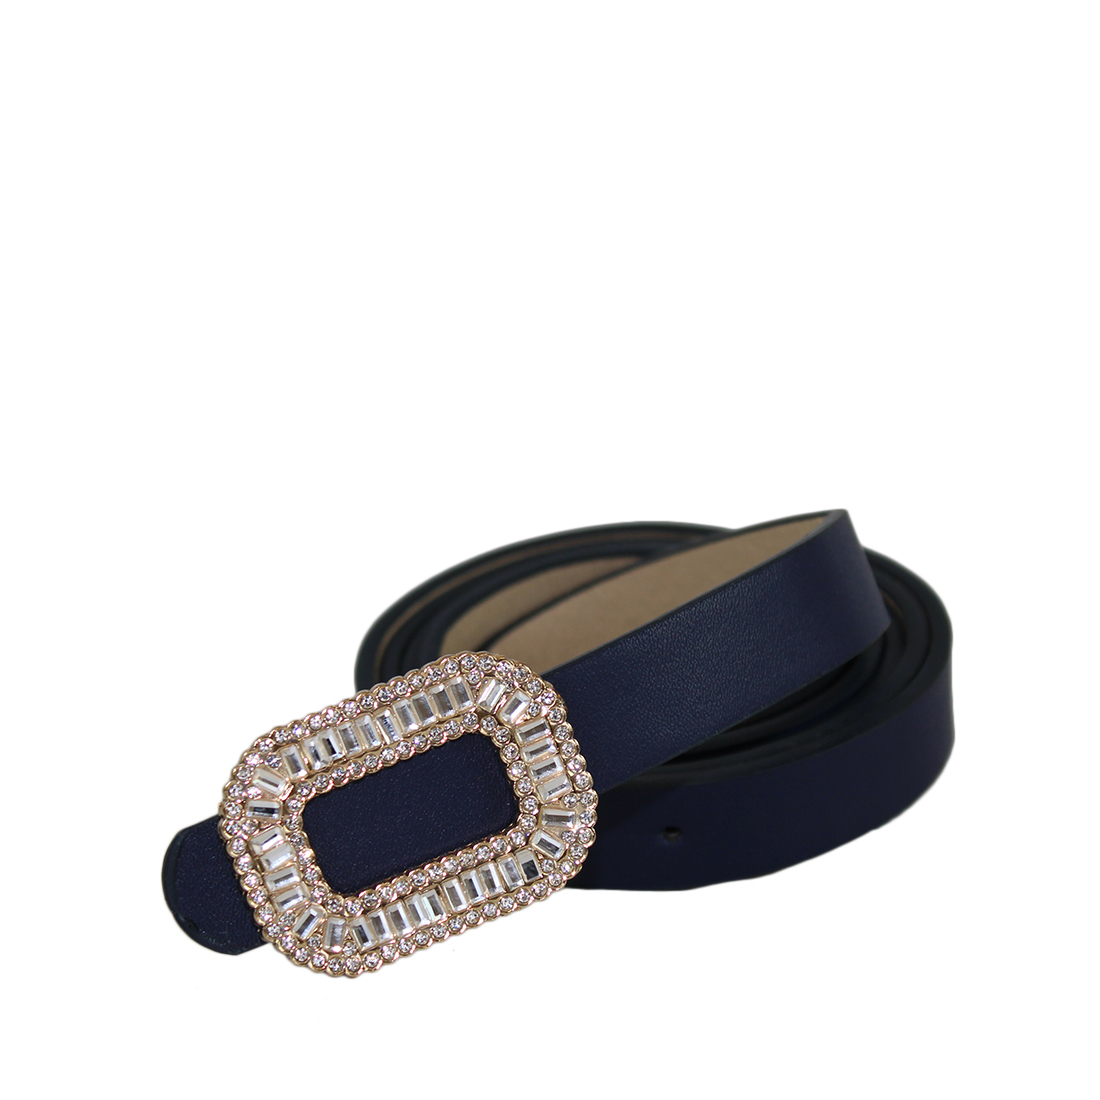 Fancy Buckle with a thin strap